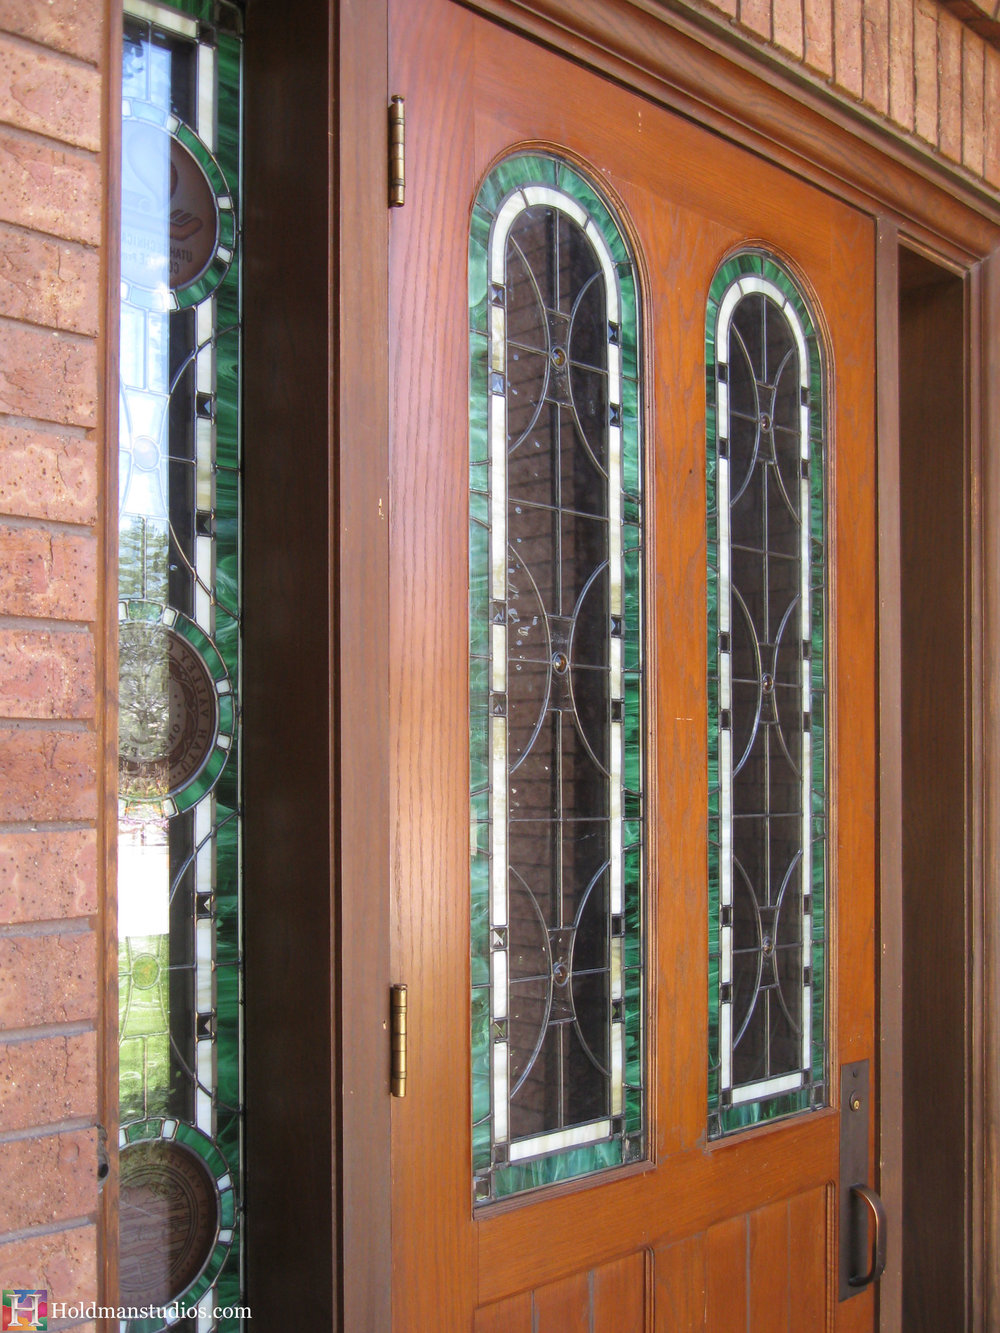 Holdman-studios-stained-glass-front-door-sidelight-windows-utah-valley-university-alumni-house.jpg